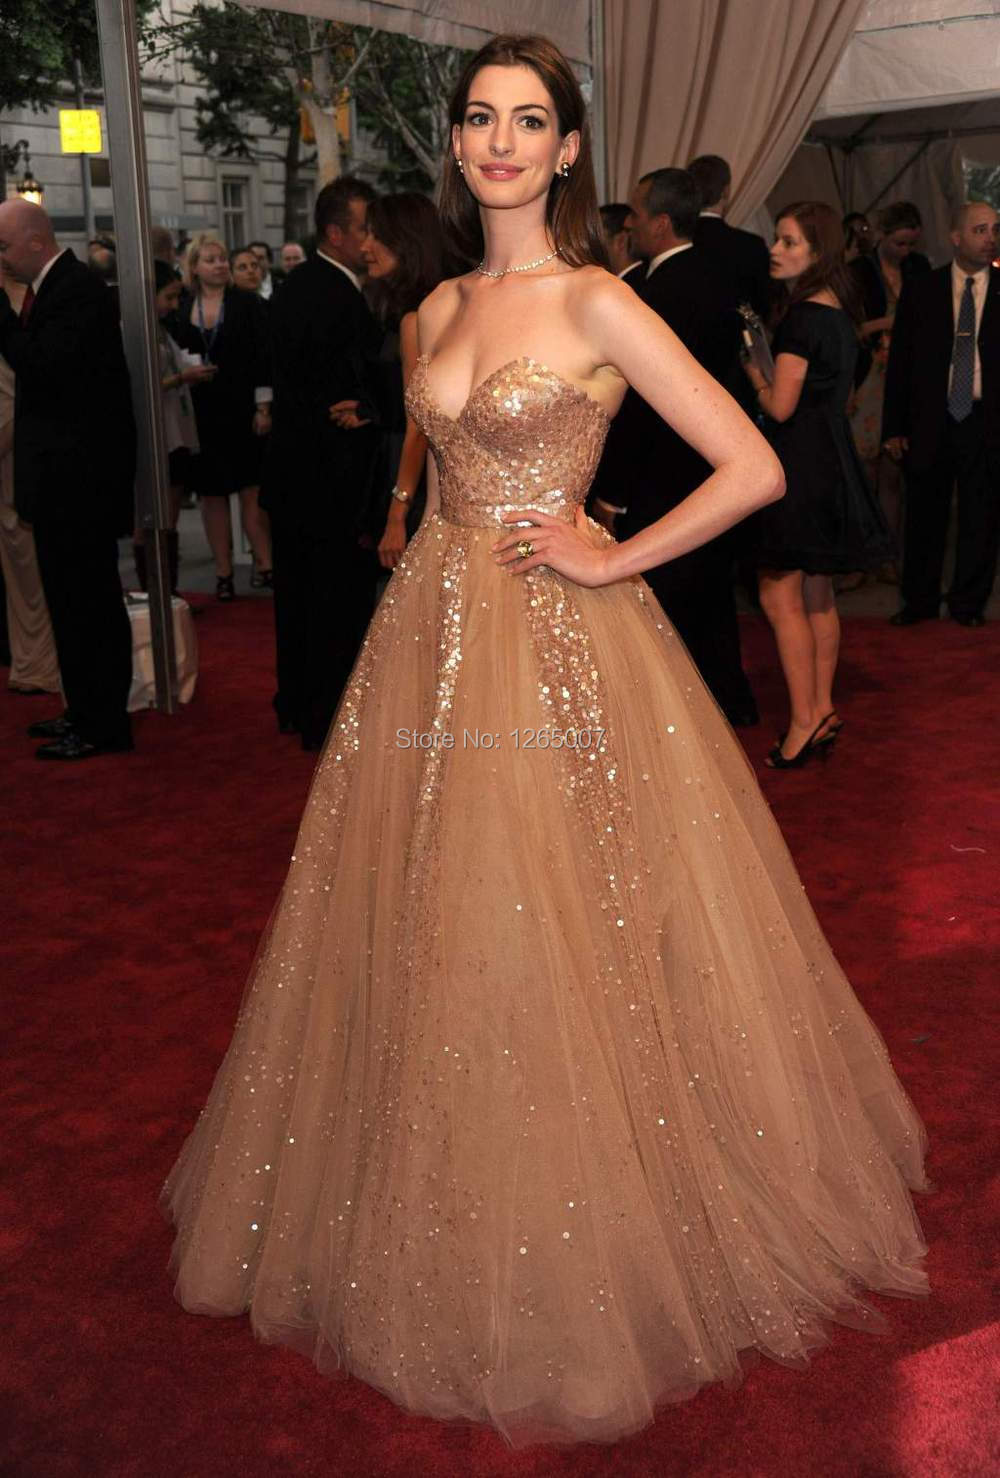 Anne Hathaway Dress Sweetheart Glitter Sequins Tulle A Line ...